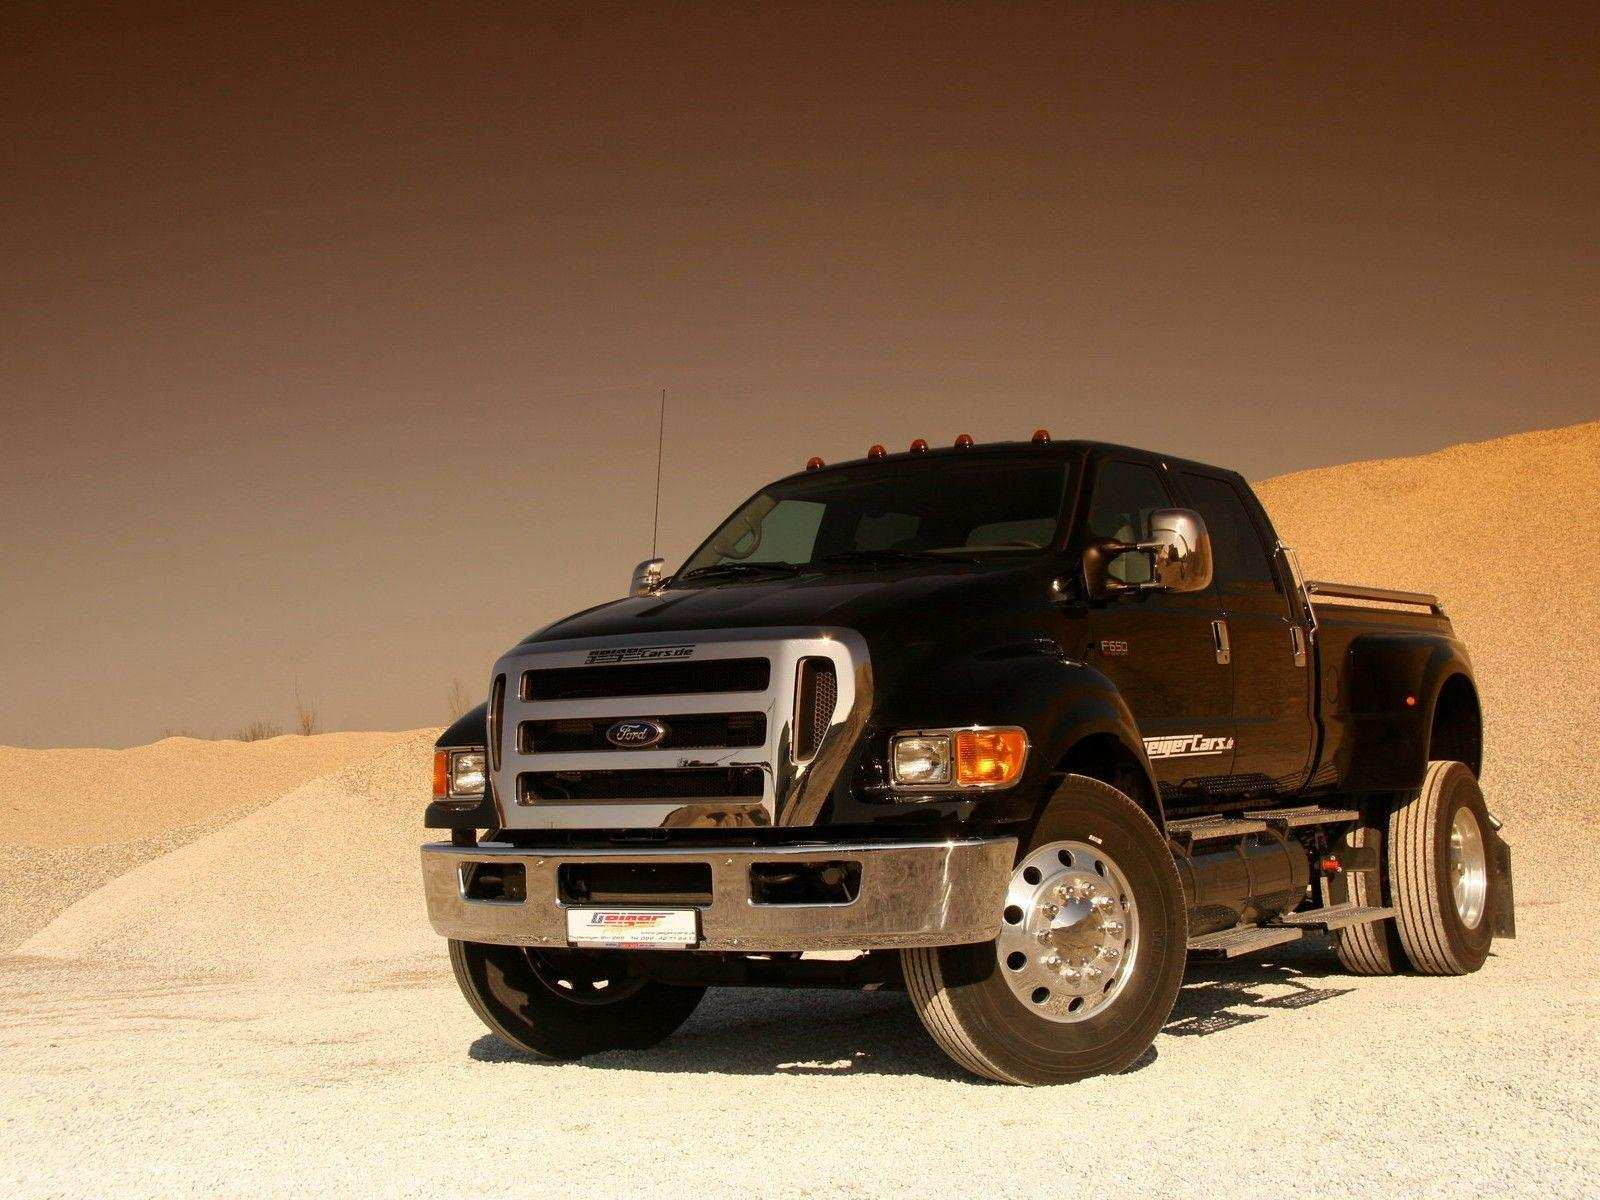 84 New Ford Diesel Wallpaper History for Ford Diesel Wallpaper